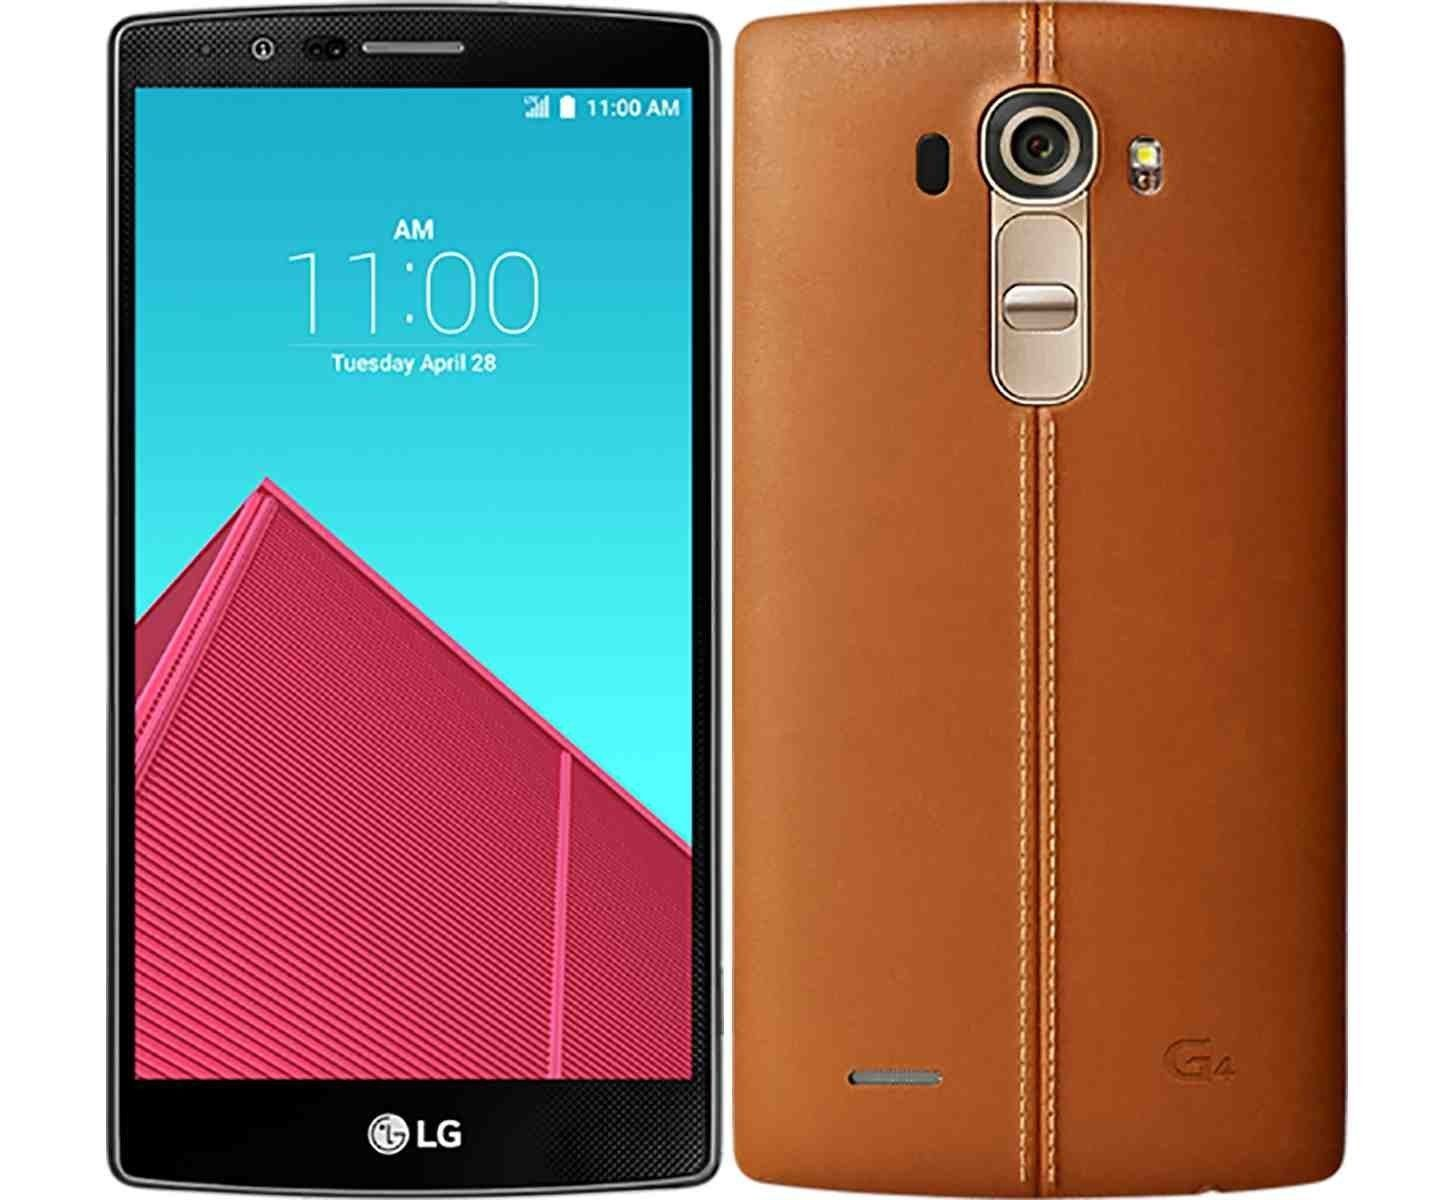 Telefono Celular Used (Good Condition) LG G4 H811 32GB Unlocked GSM T-Mobile 4G LTE Android Smartphone (Brown) + LG en VeoyCompro.net